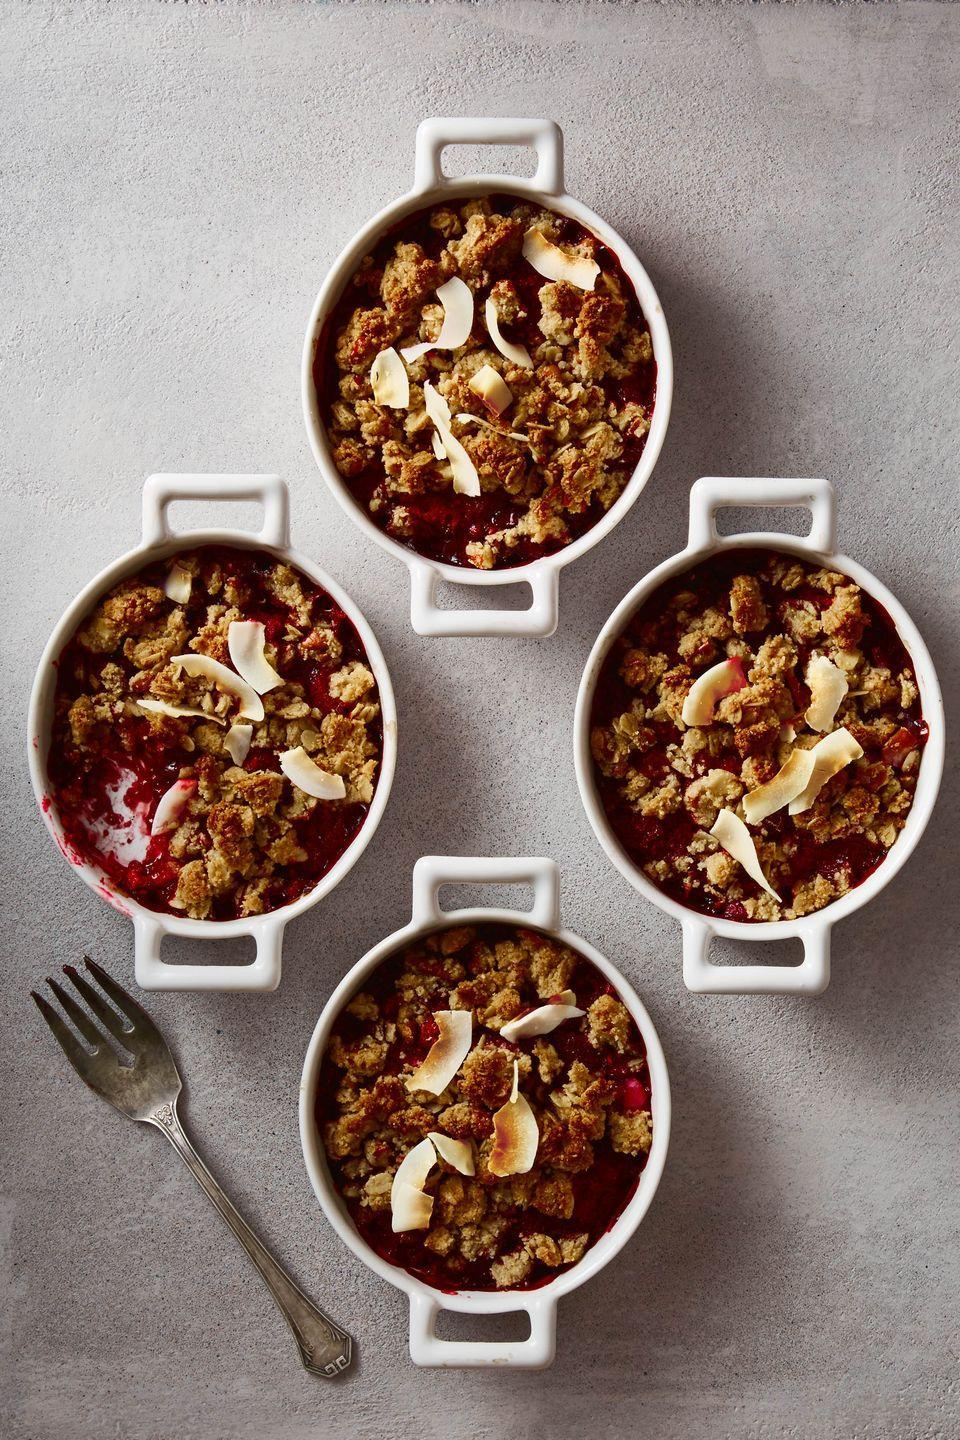 "<p>This warm, nutty crumble relies on the natural sweetness in the berries instead of artificial sugars. </p><p><em><a href=""https://www.goodhousekeeping.com/food-recipes/dessert/a47526/berry-coconut-crumble-recipe/?visibilityoverride"" rel=""nofollow noopener"" target=""_blank"" data-ylk=""slk:Get the recipe for Berry Coconut Crumble »"" class=""link rapid-noclick-resp"">Get the recipe for Berry Coconut Crumble »</a></em></p>"